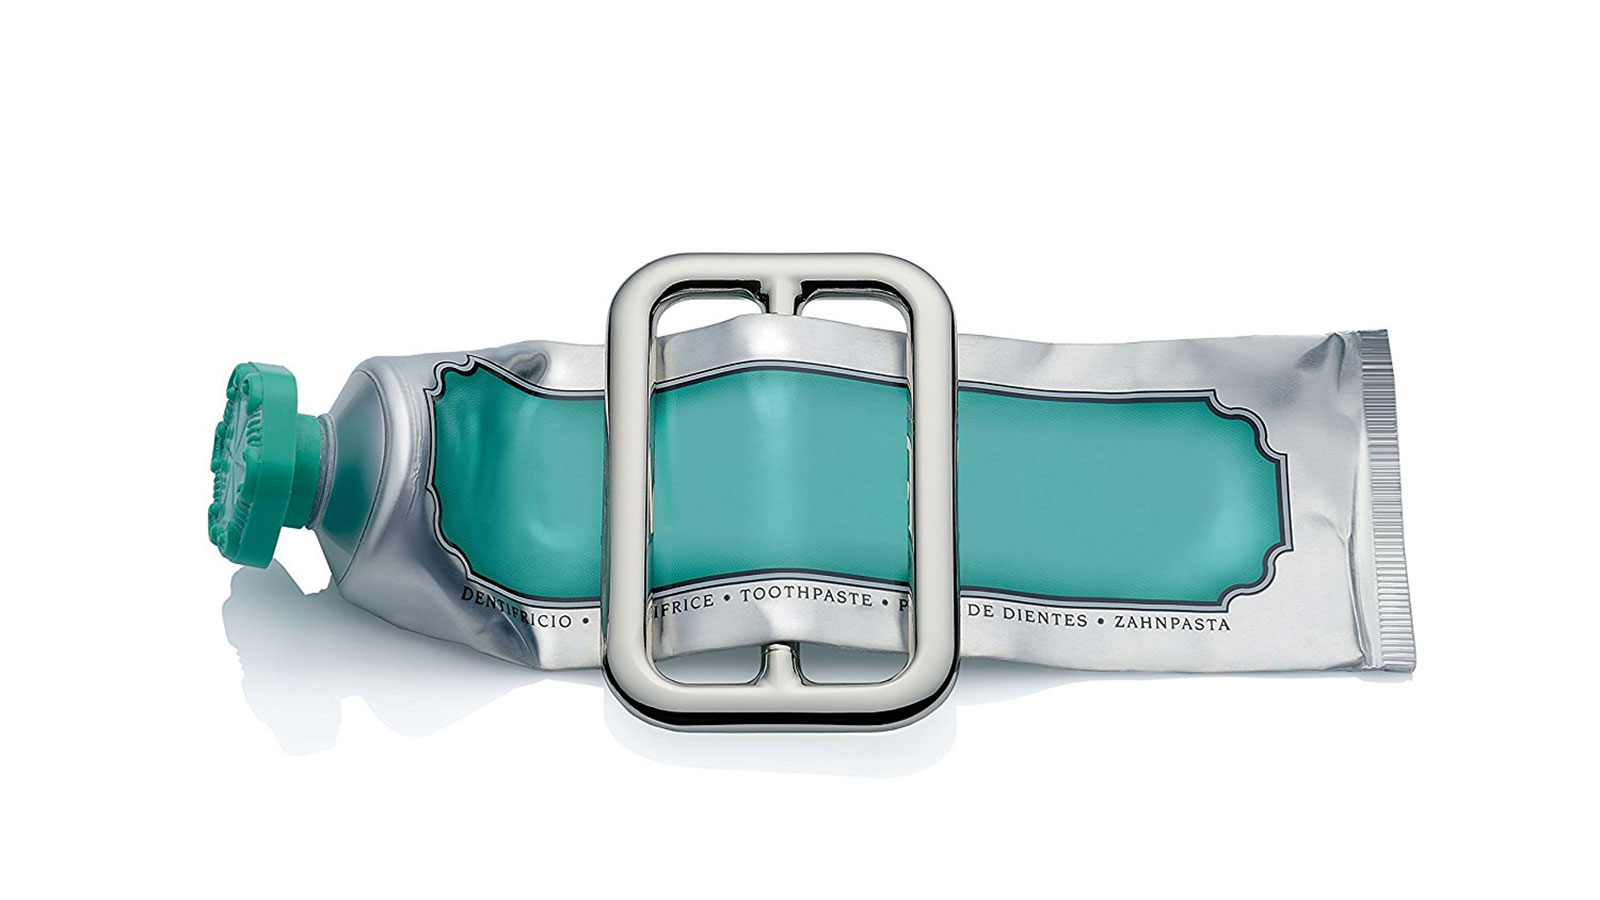 ALESSI TOOTHPASTE BUCKLE